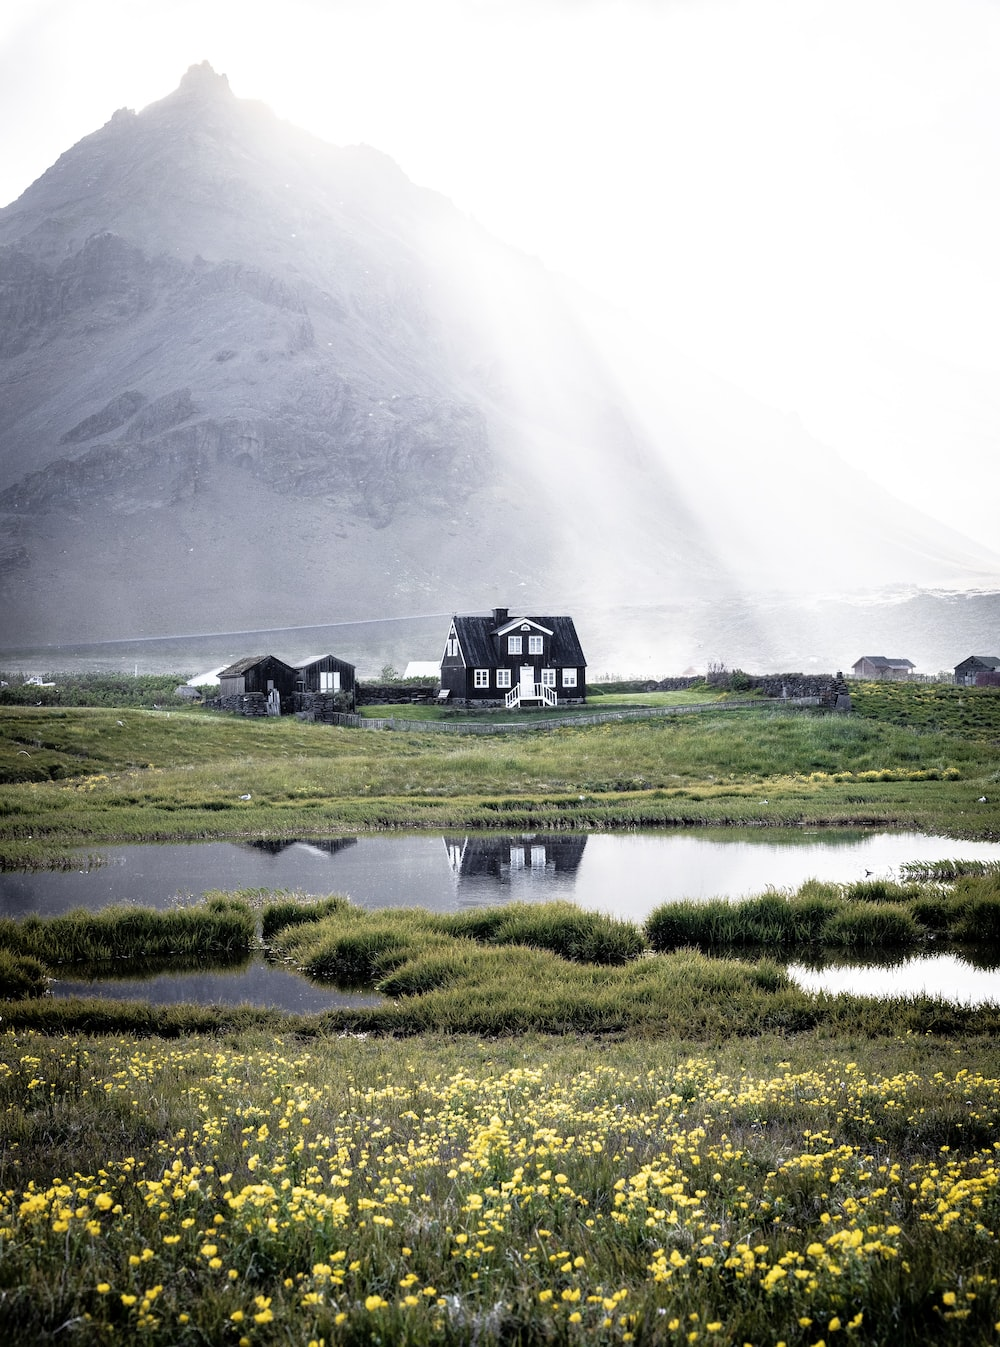 black house near body of water with mountain at distance